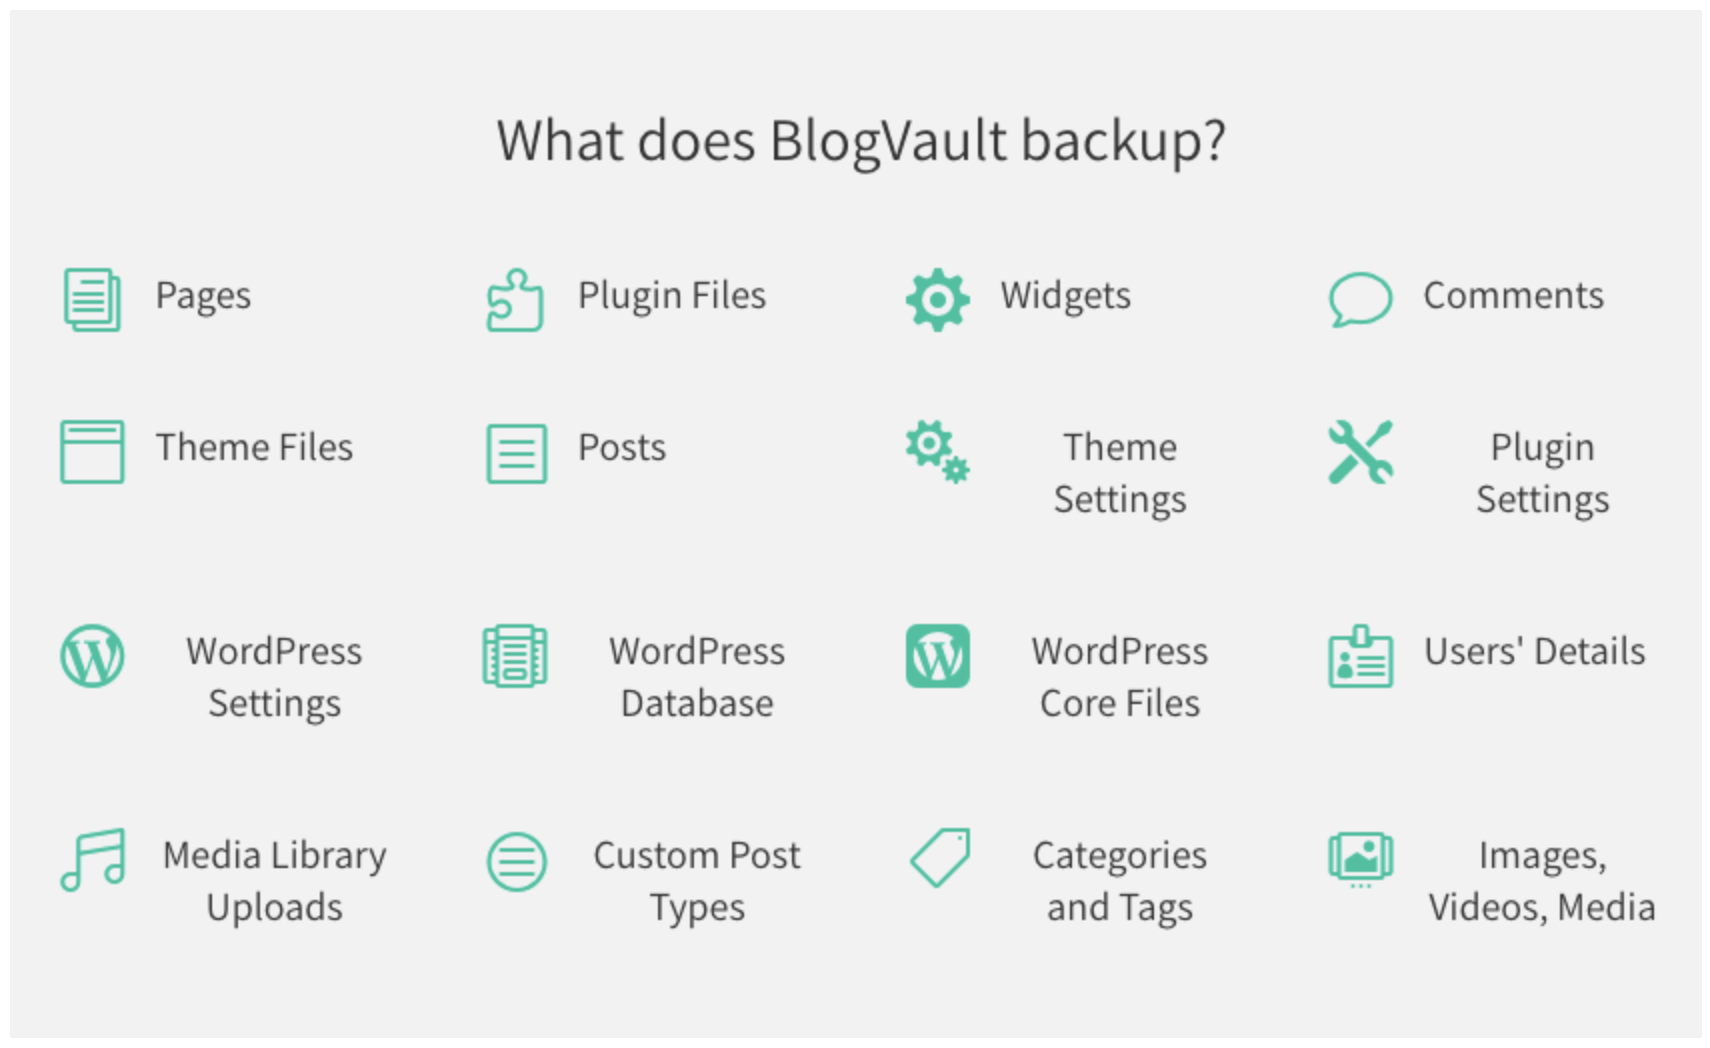 BlogVault backup